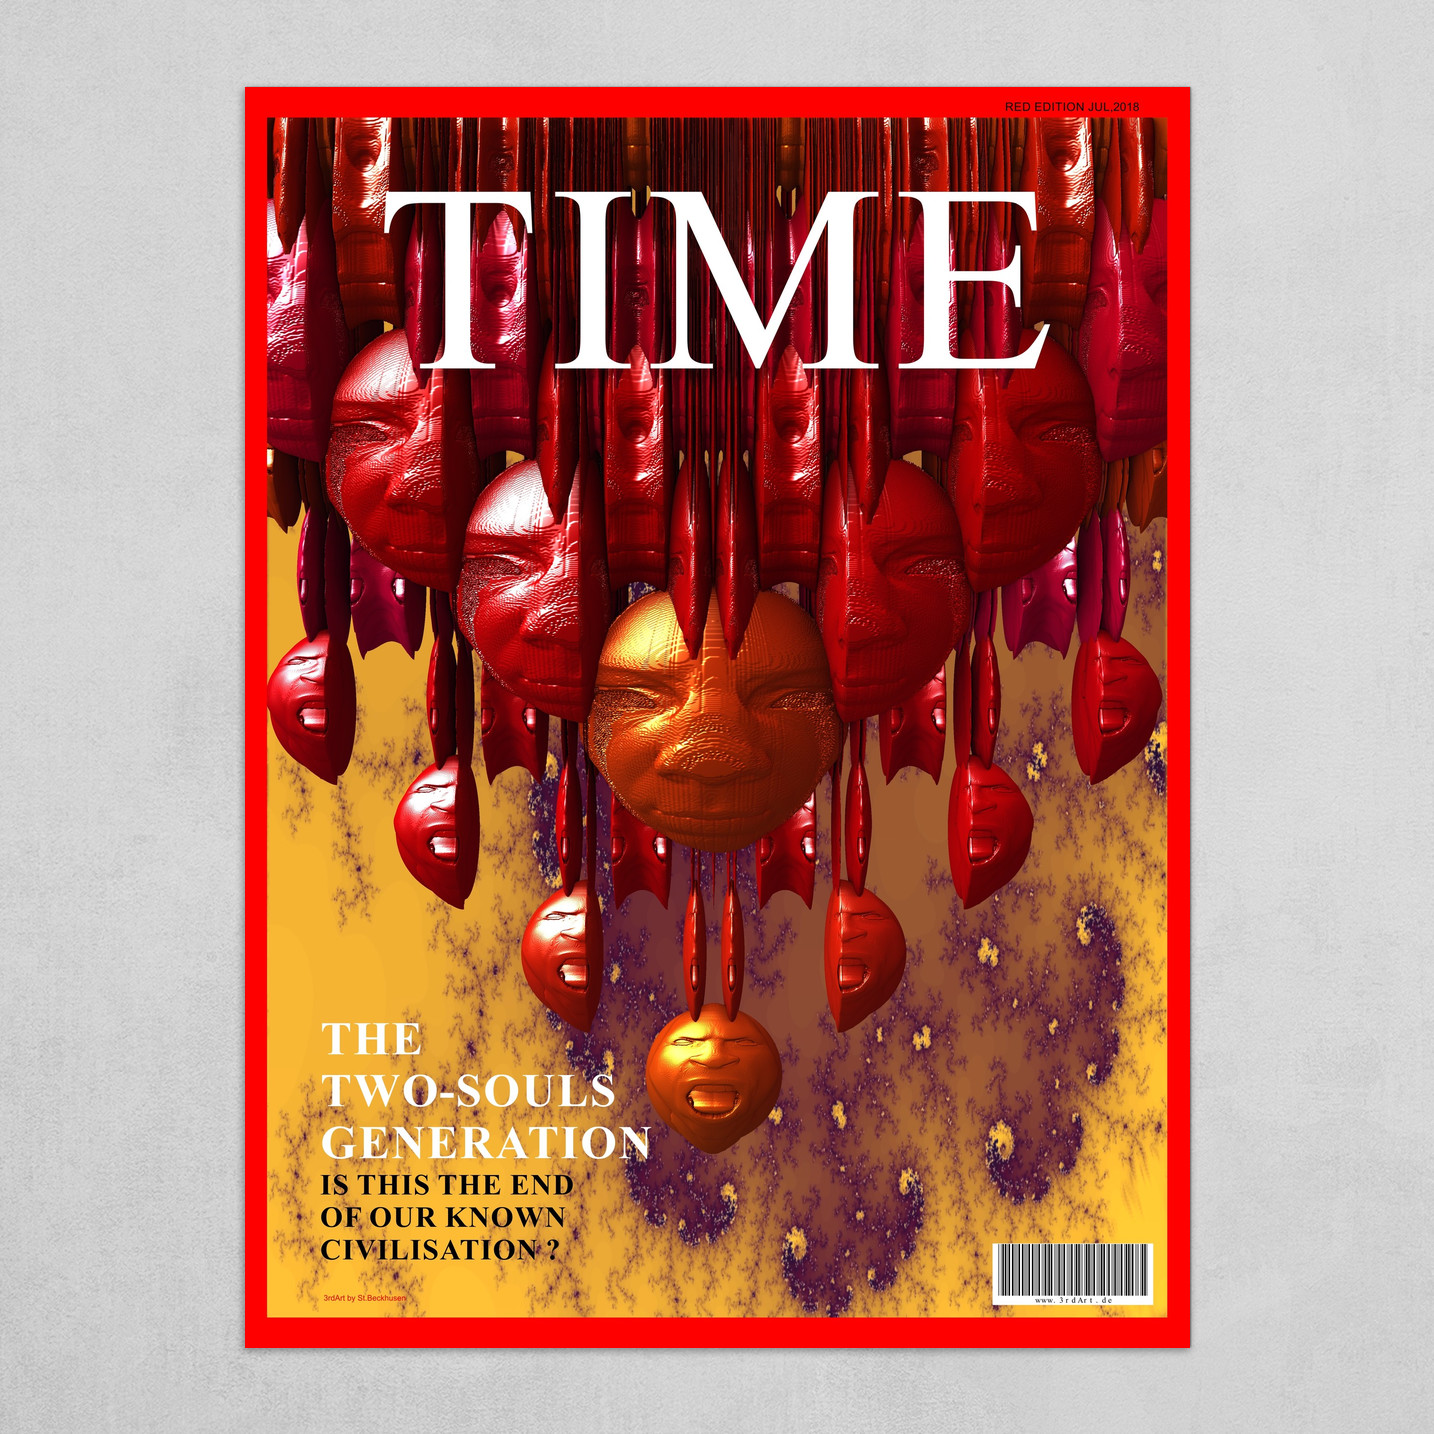 Time - The Two-Souls Generation (Red Edition)